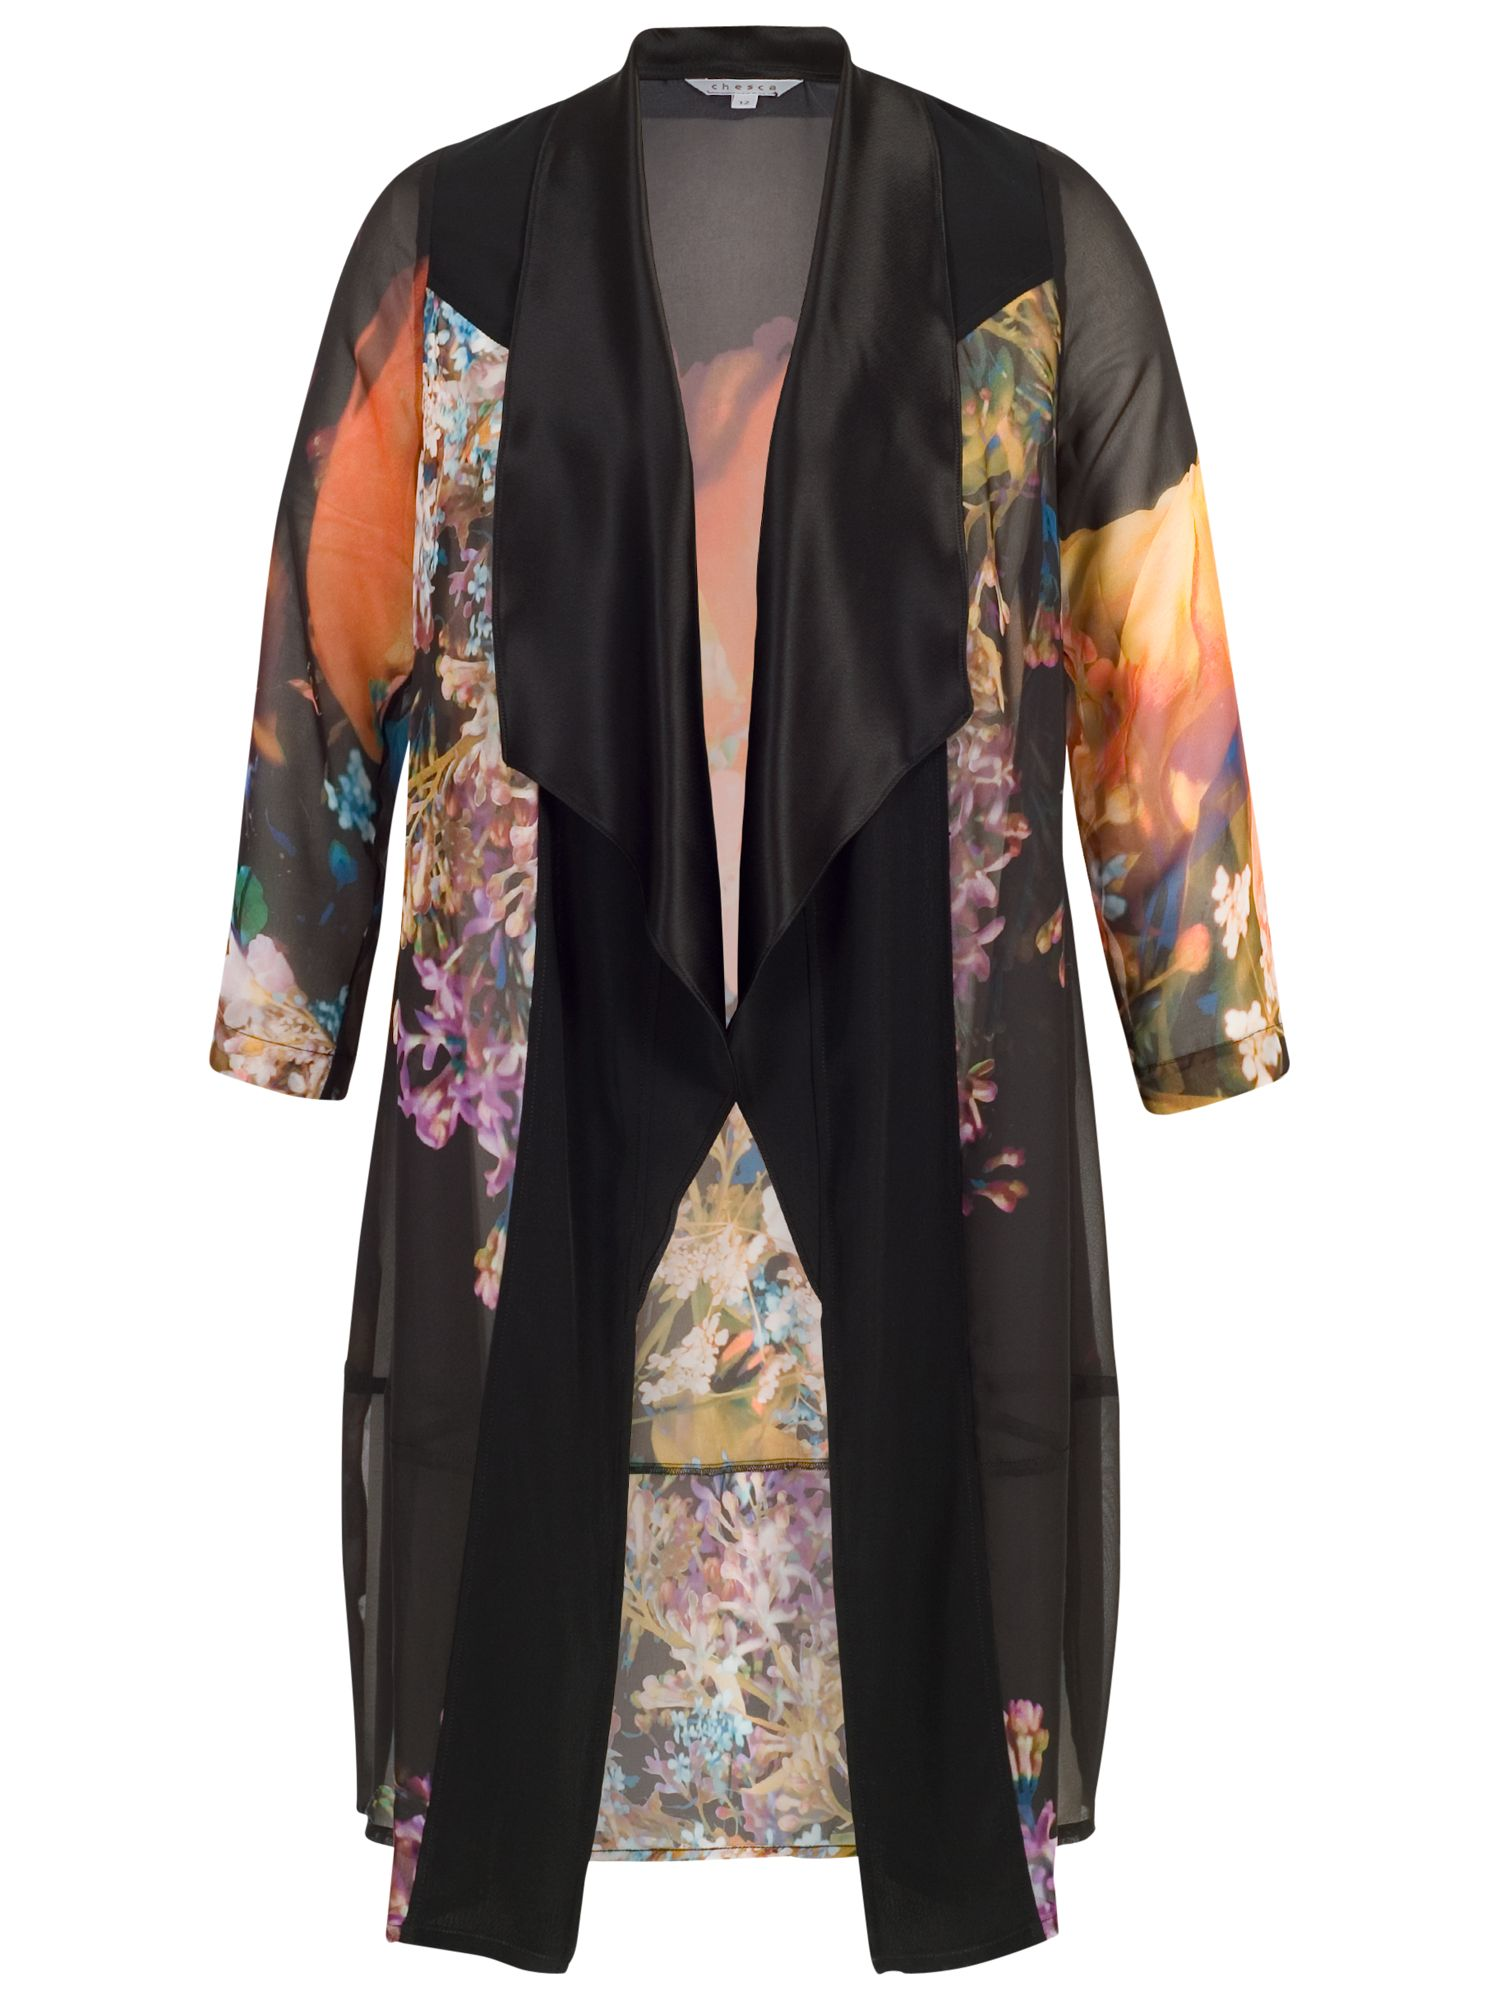 Chesca Chesca Tulip Coat, Black/Orange